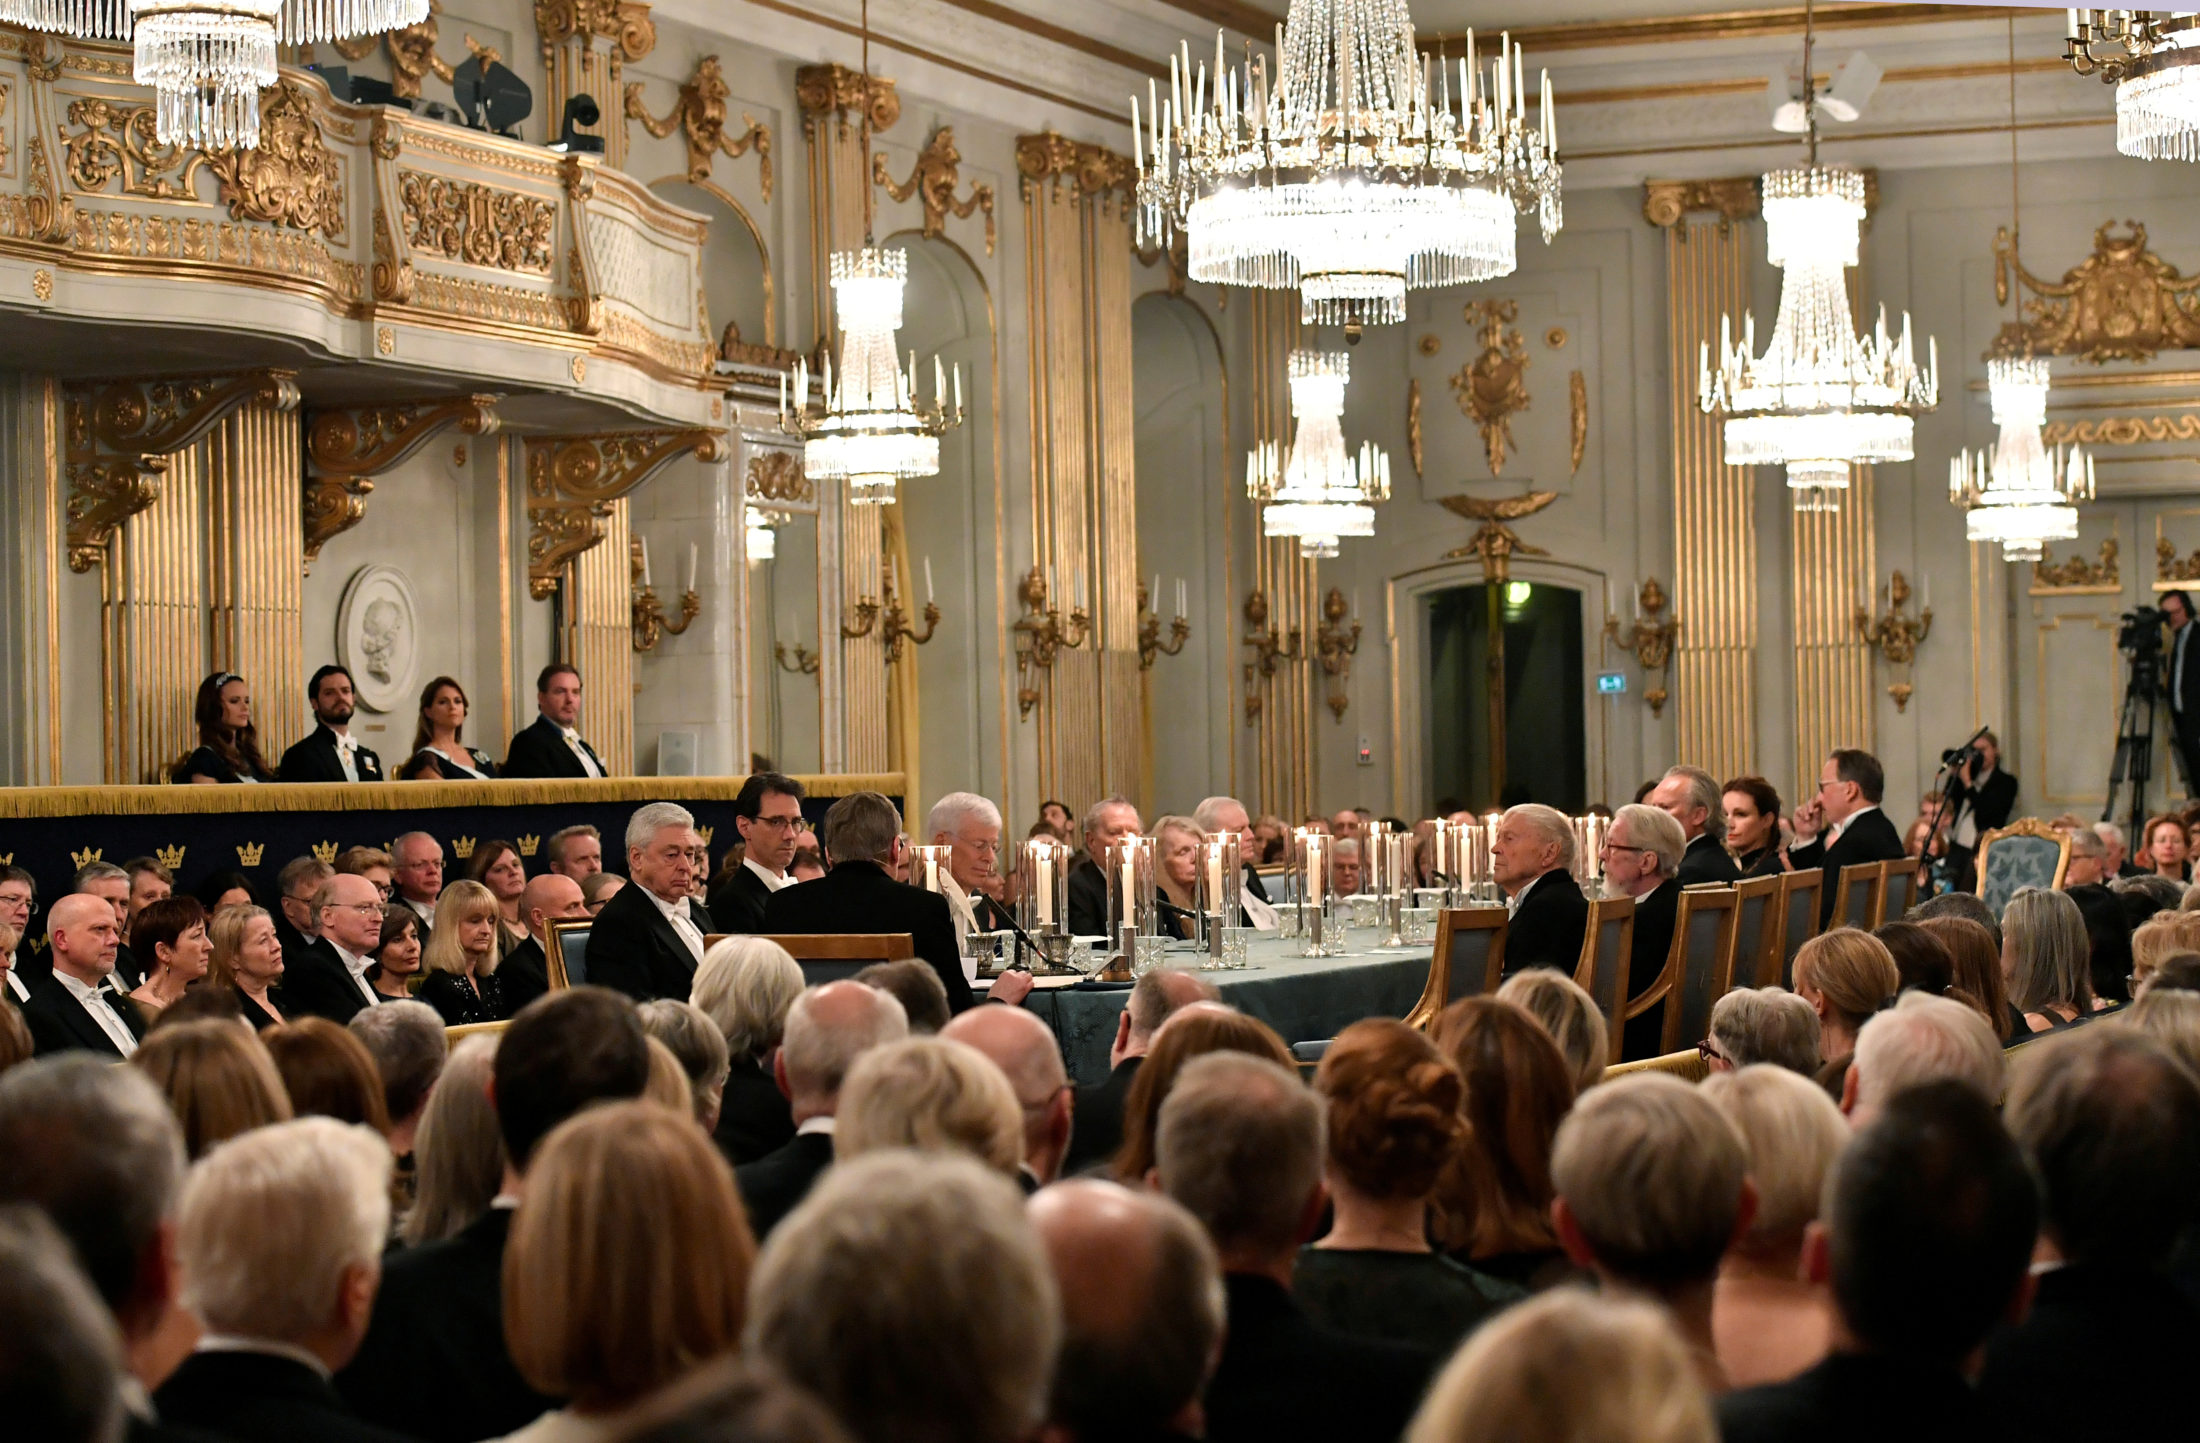 A general view of the Swedish Academy's annual meeting at the Old Stock Exchange building in Stockholm, Sweden, in 2017. Photo by TT News Agency/Jonas Ekstromer via Reuters